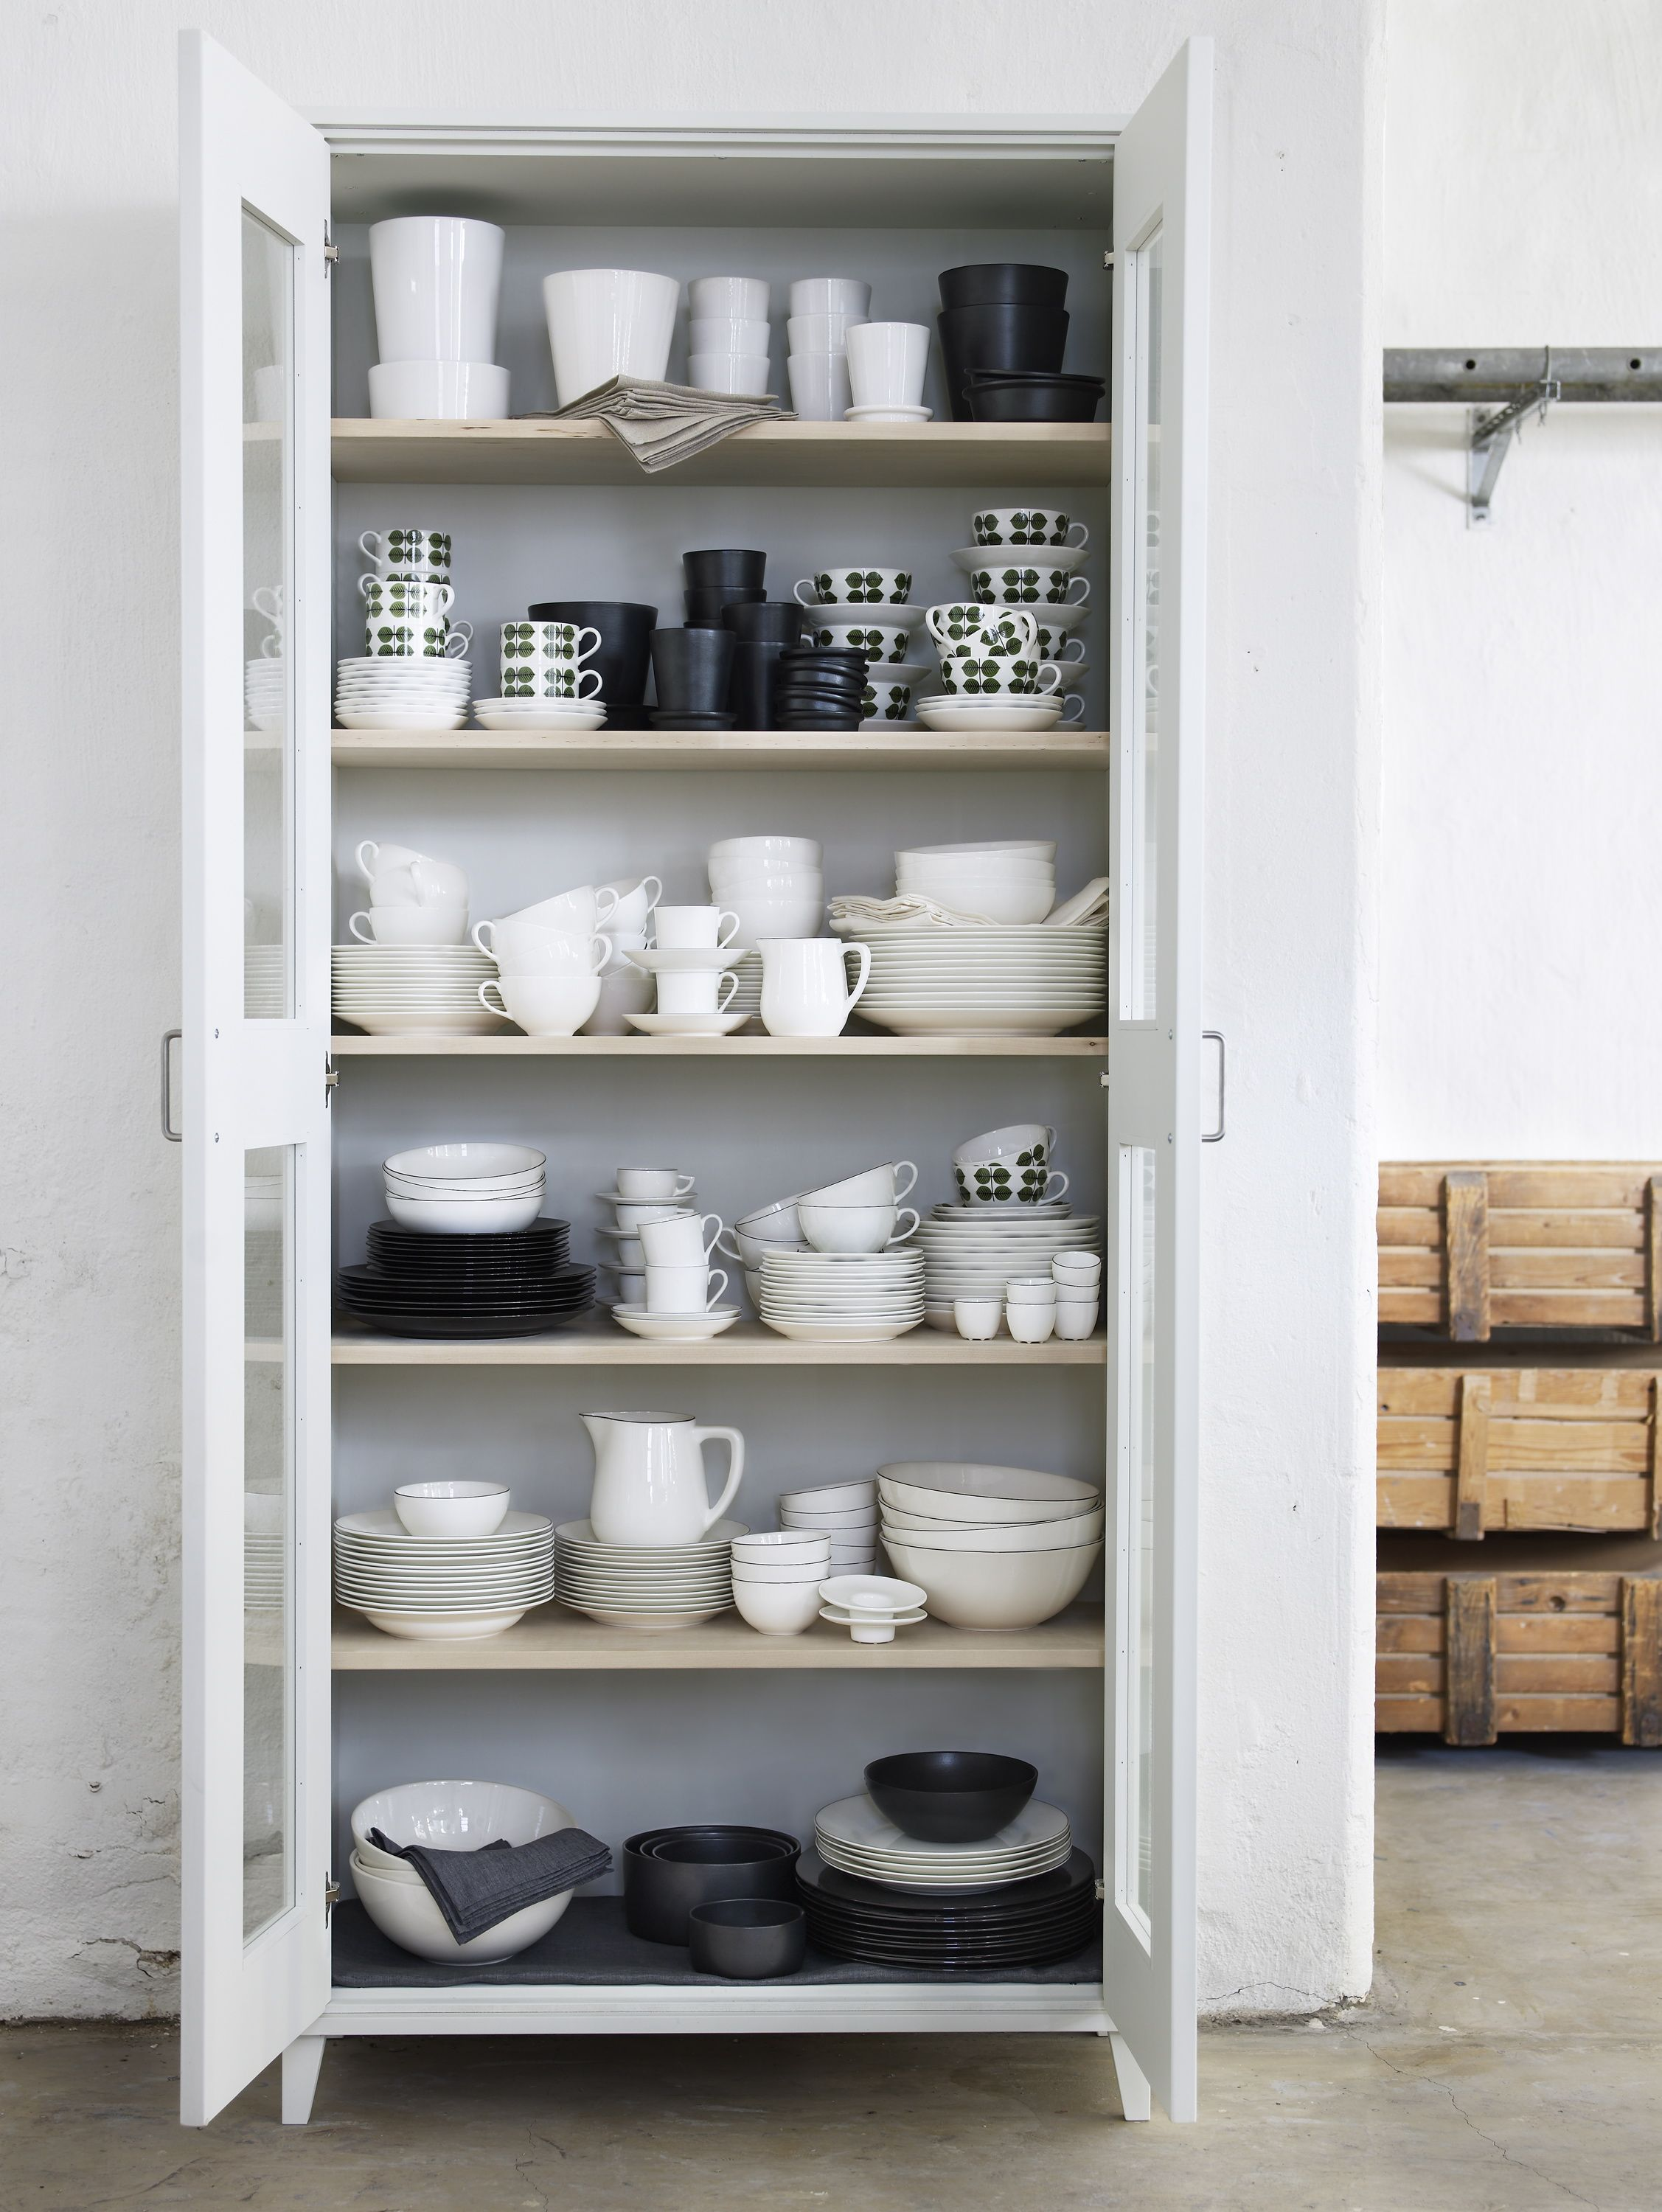 acomodar alacena en open blanco color storage una cupboard cocina kitchen platos y cabinetskitchen cabinetschina furniture de los tazas pin todos para